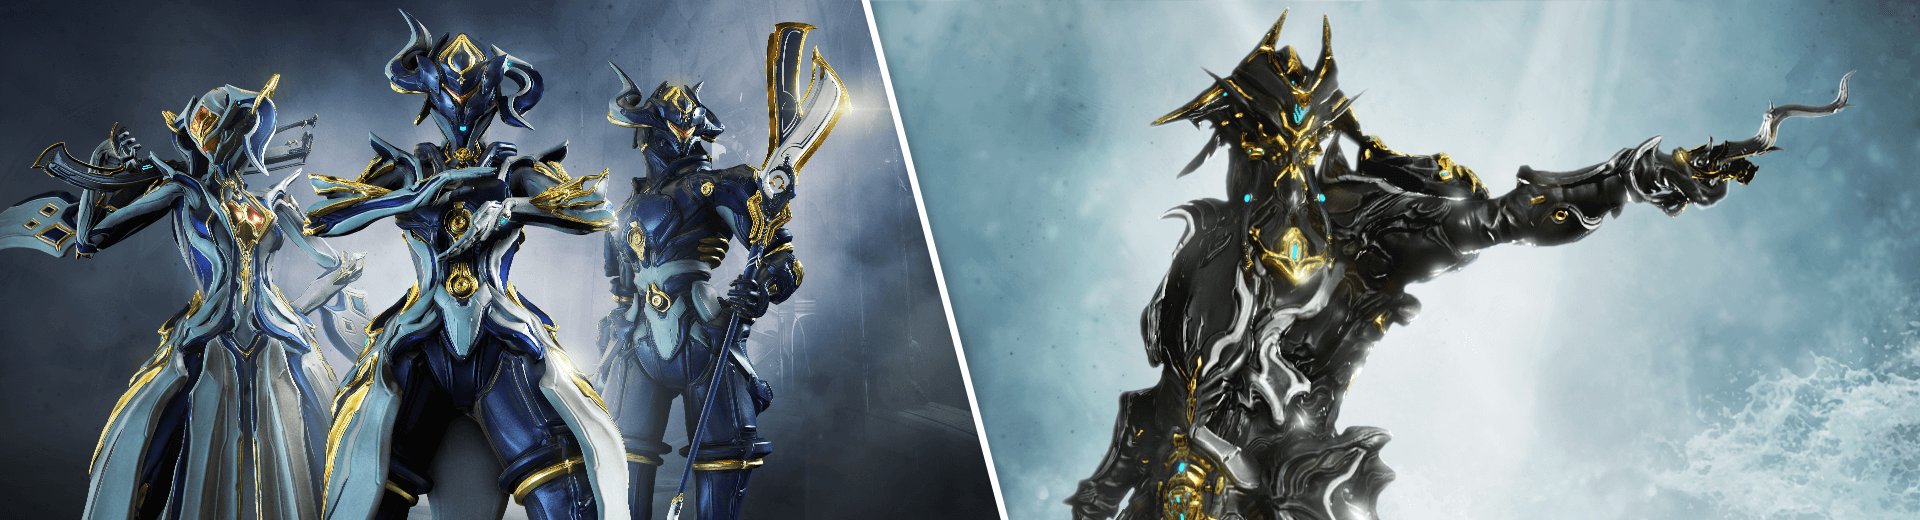 Equinox Prime Access Ends July 6 - Announcements & Events